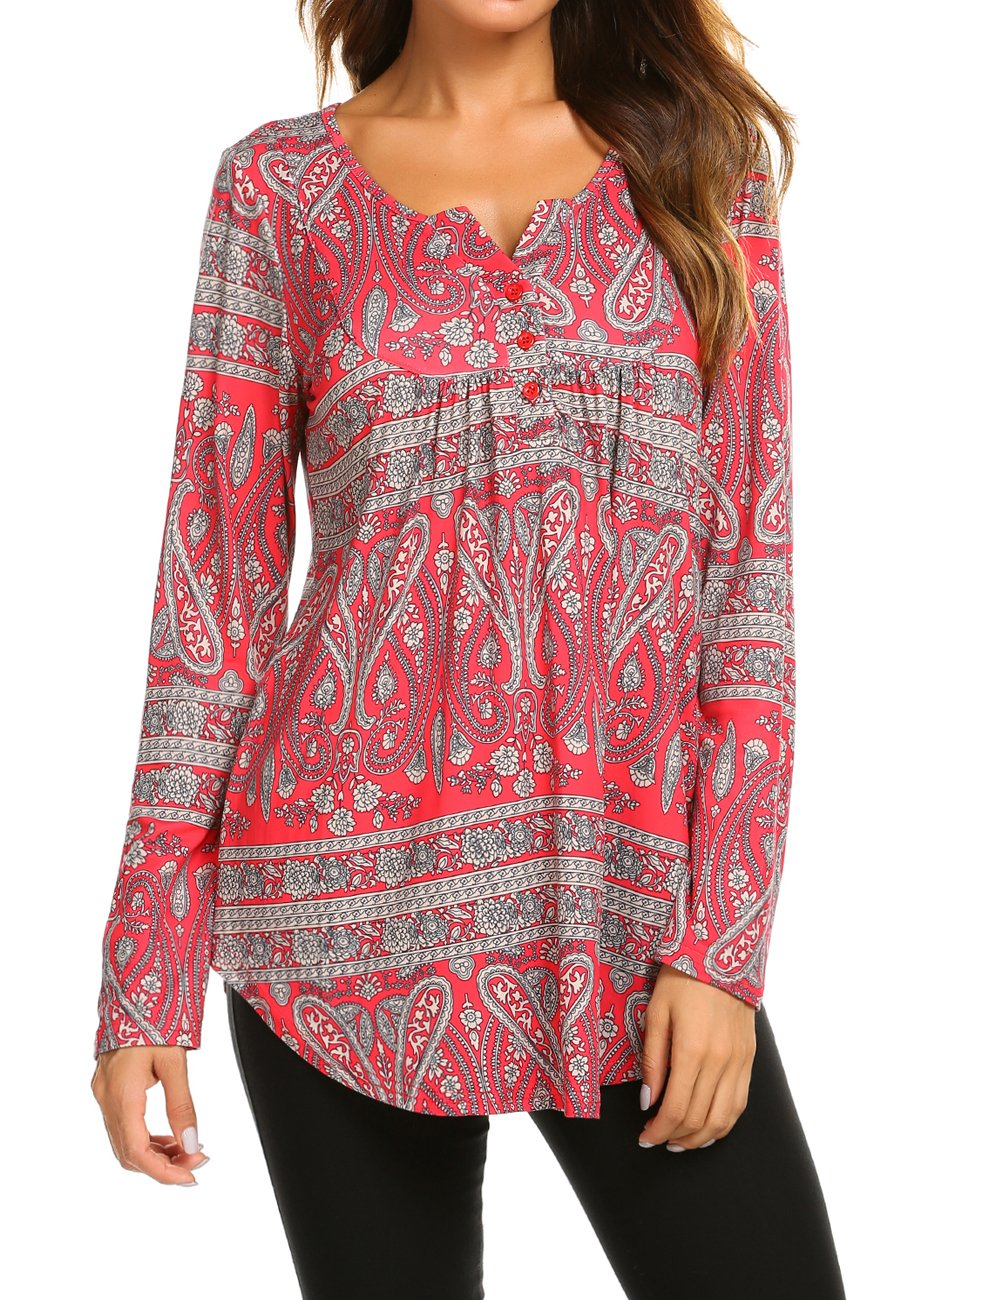 bcd1f48fec6d Women s Paisley Printed Long Sleeve Henley V Neck Pleated Casual Flare  Tunic Blouse Shirt product image